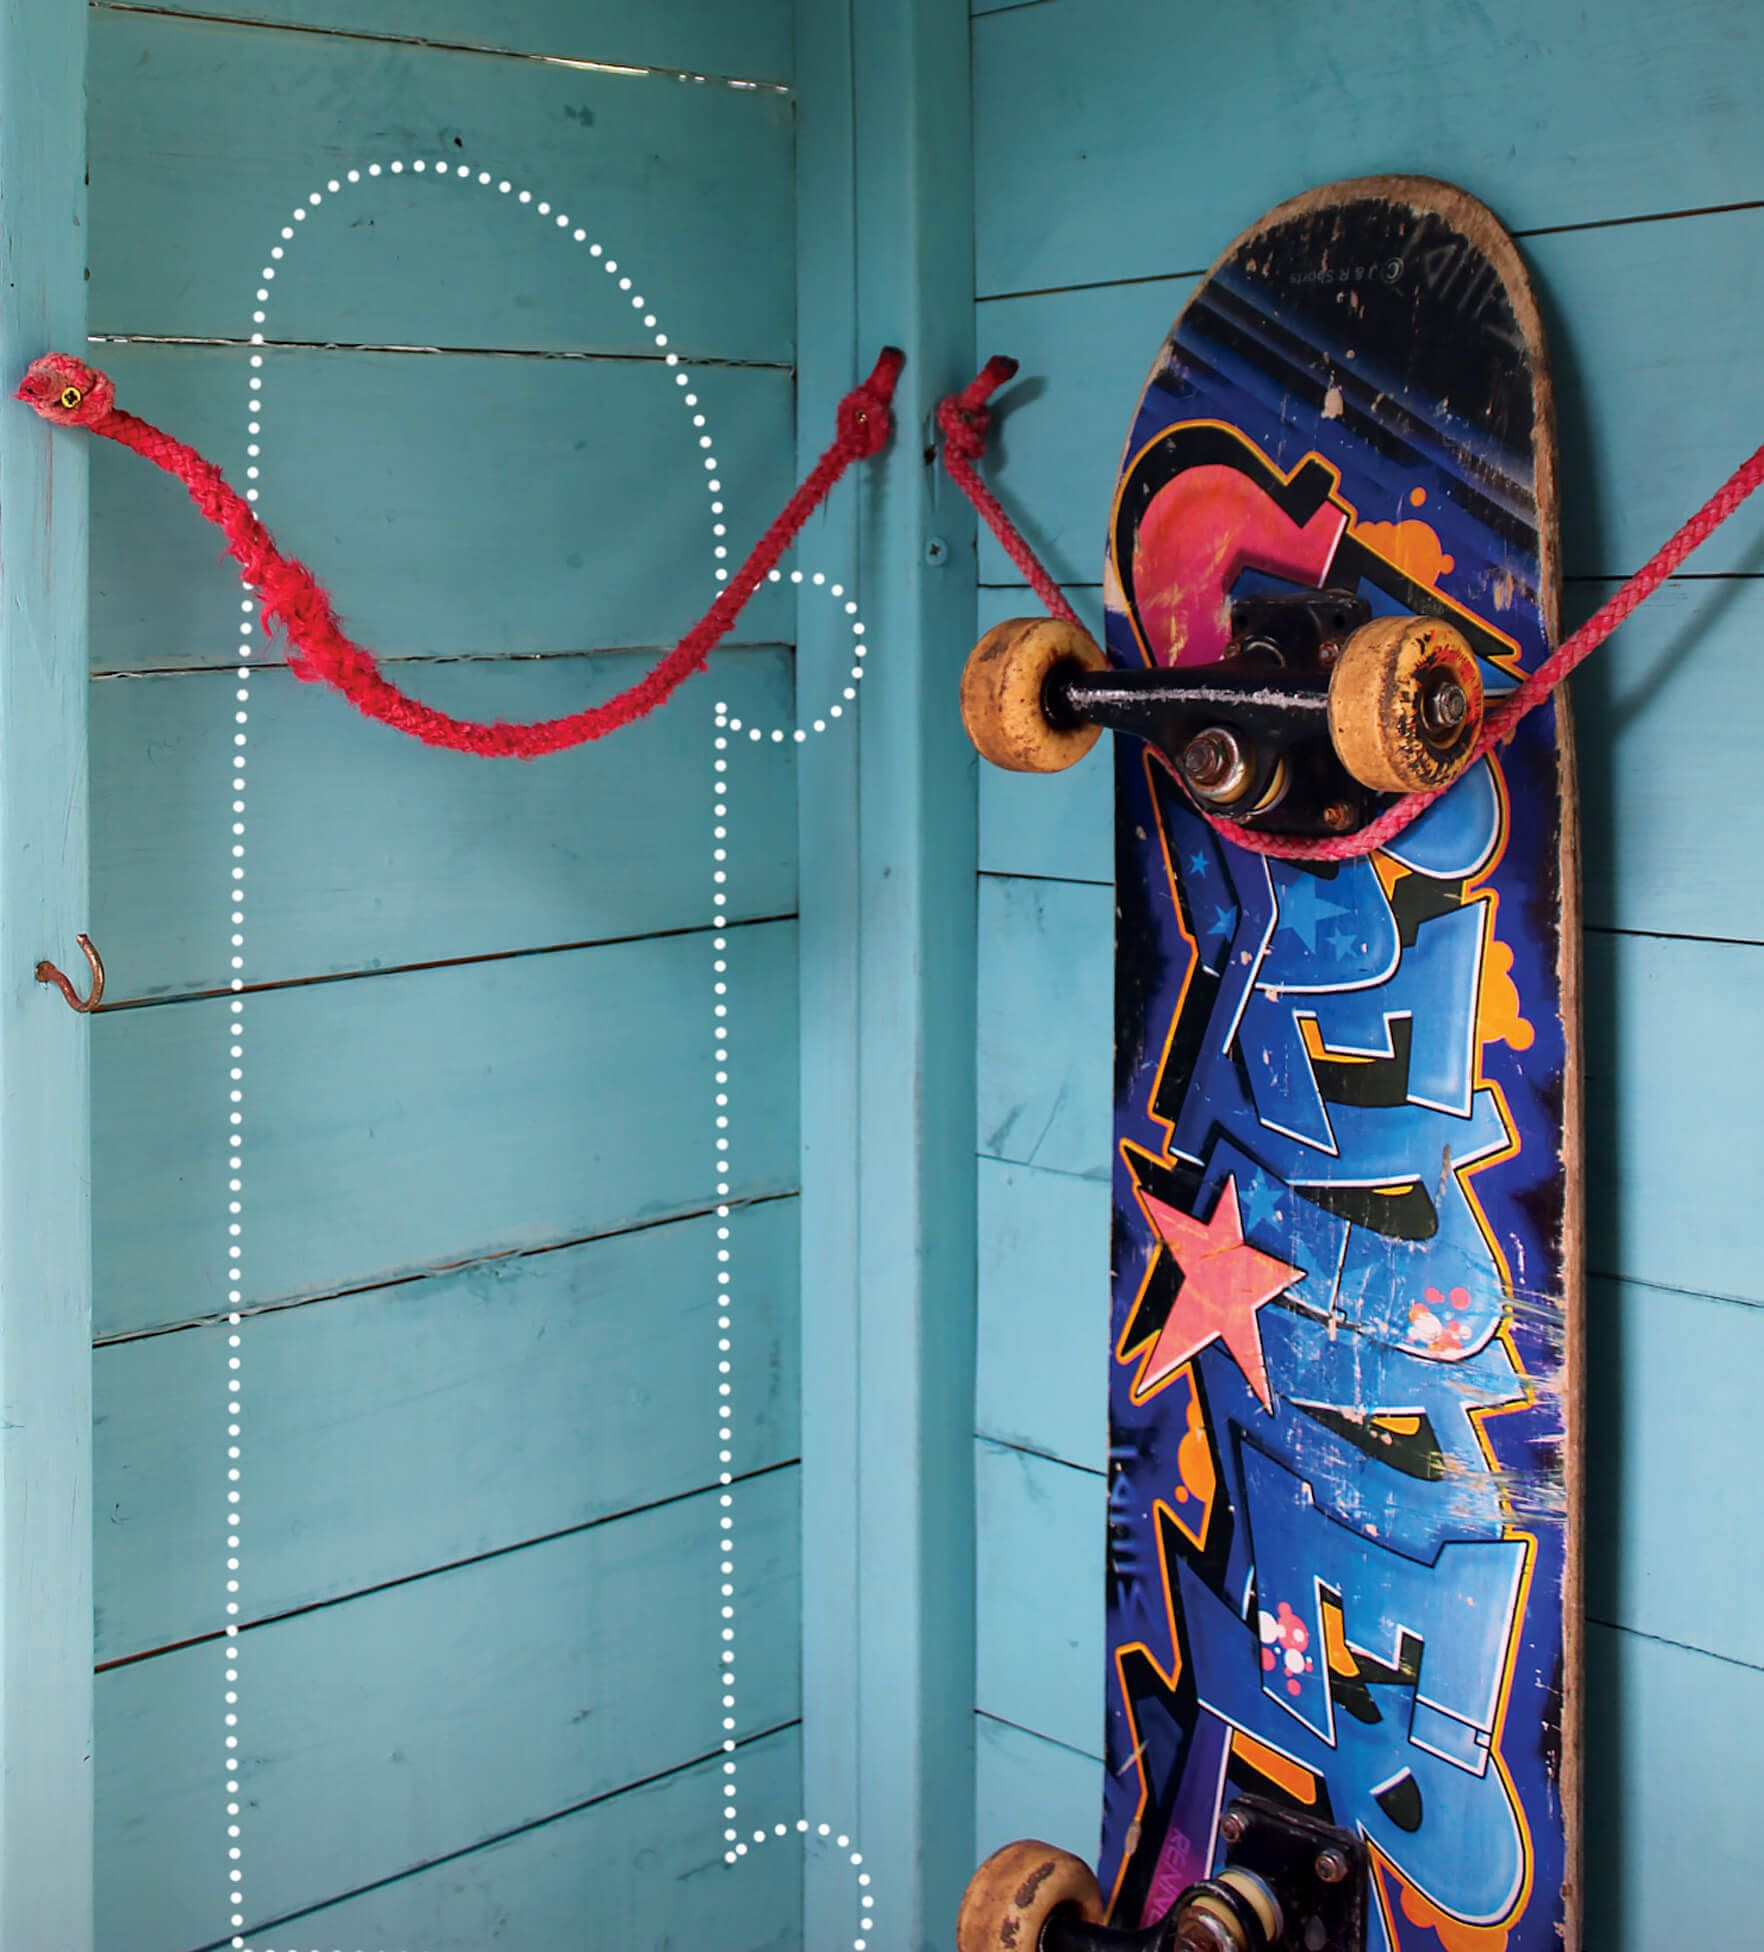 How to wall hang a skateboard to show off the graphics